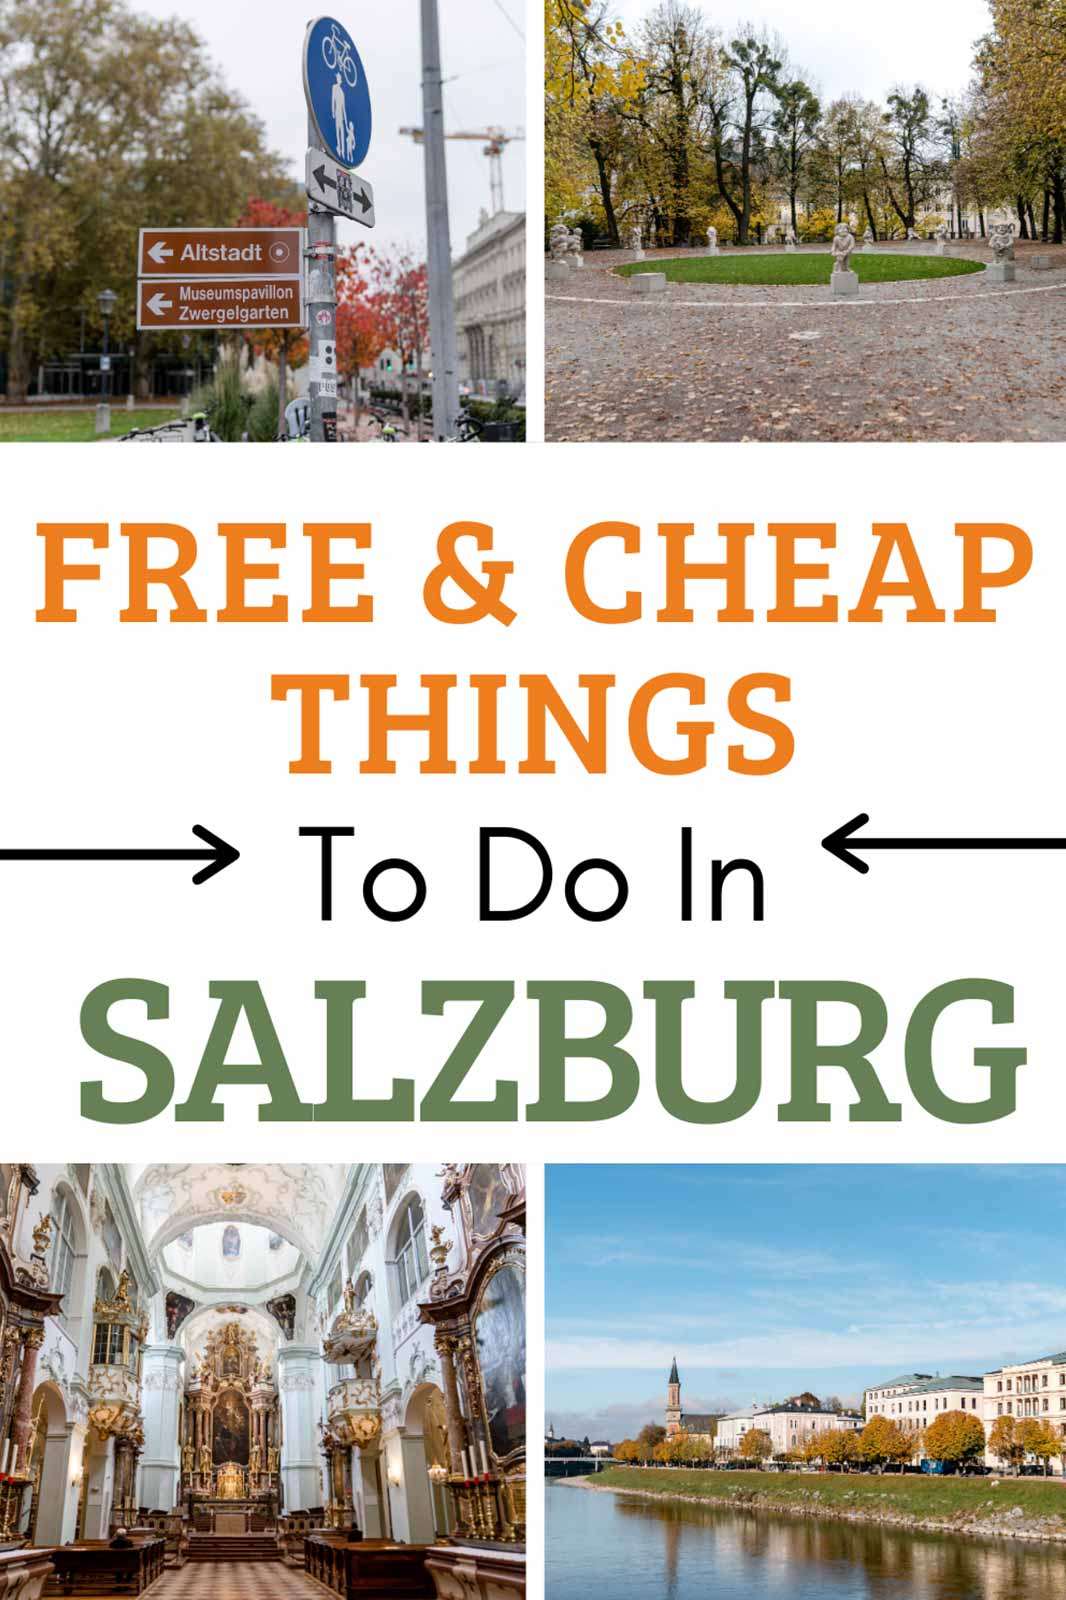 Free and Cheap Things To Do In Salzburg